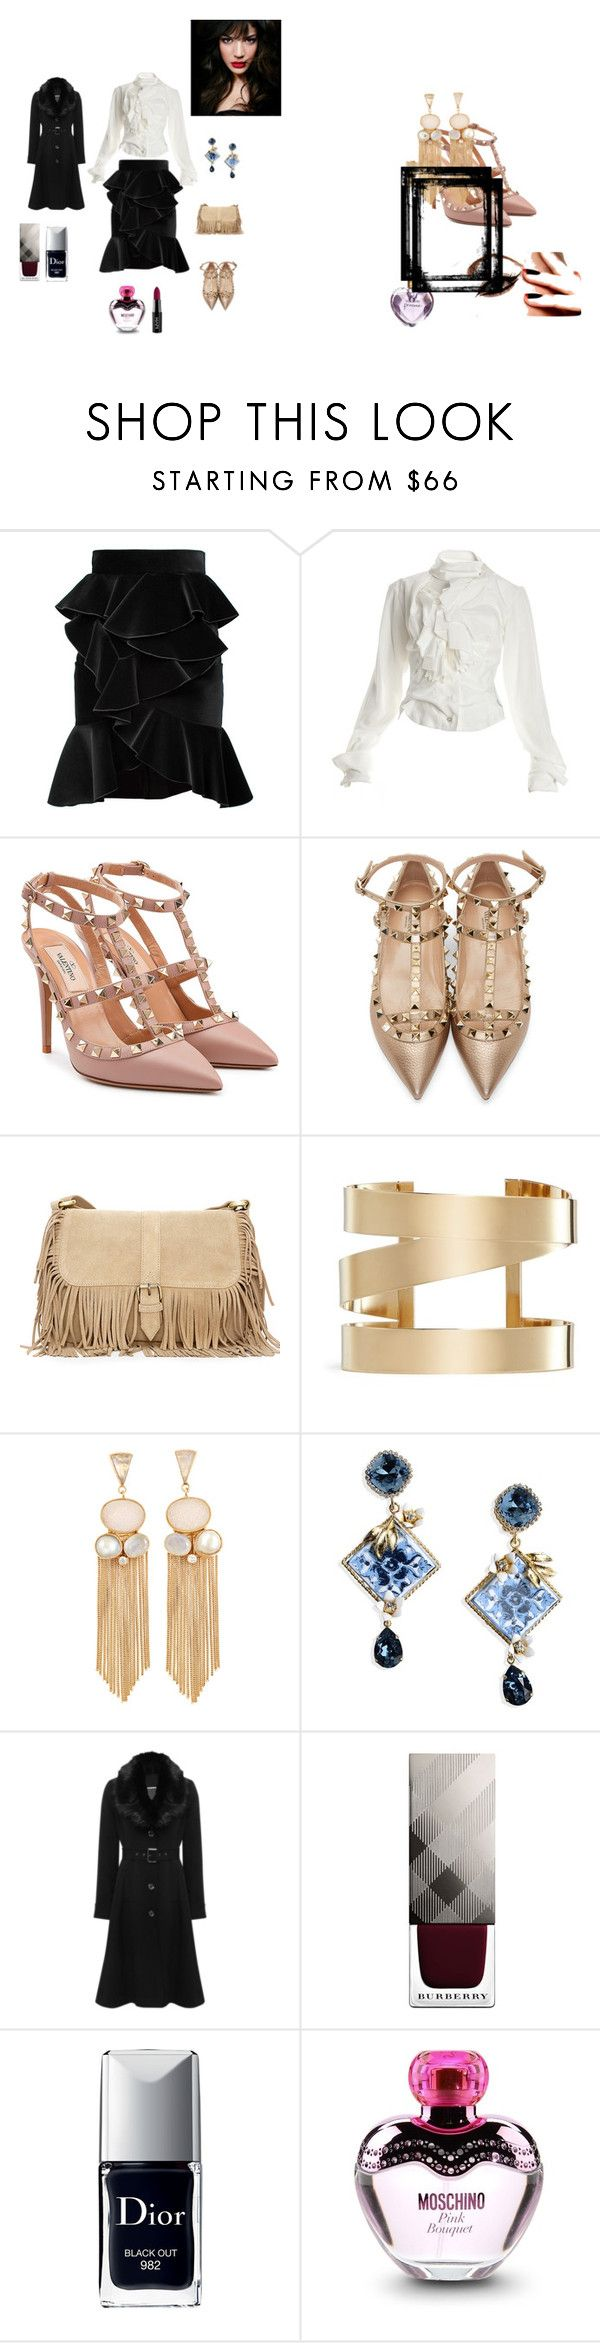 """Senza titolo #2"" by taniaazzini on Polyvore featuring moda, Balmain, Vivienne Westwood, Valentino, Isabel Marant, Dolce&Gabbana, M&Co, Burberry, Vera Wang e IVI"